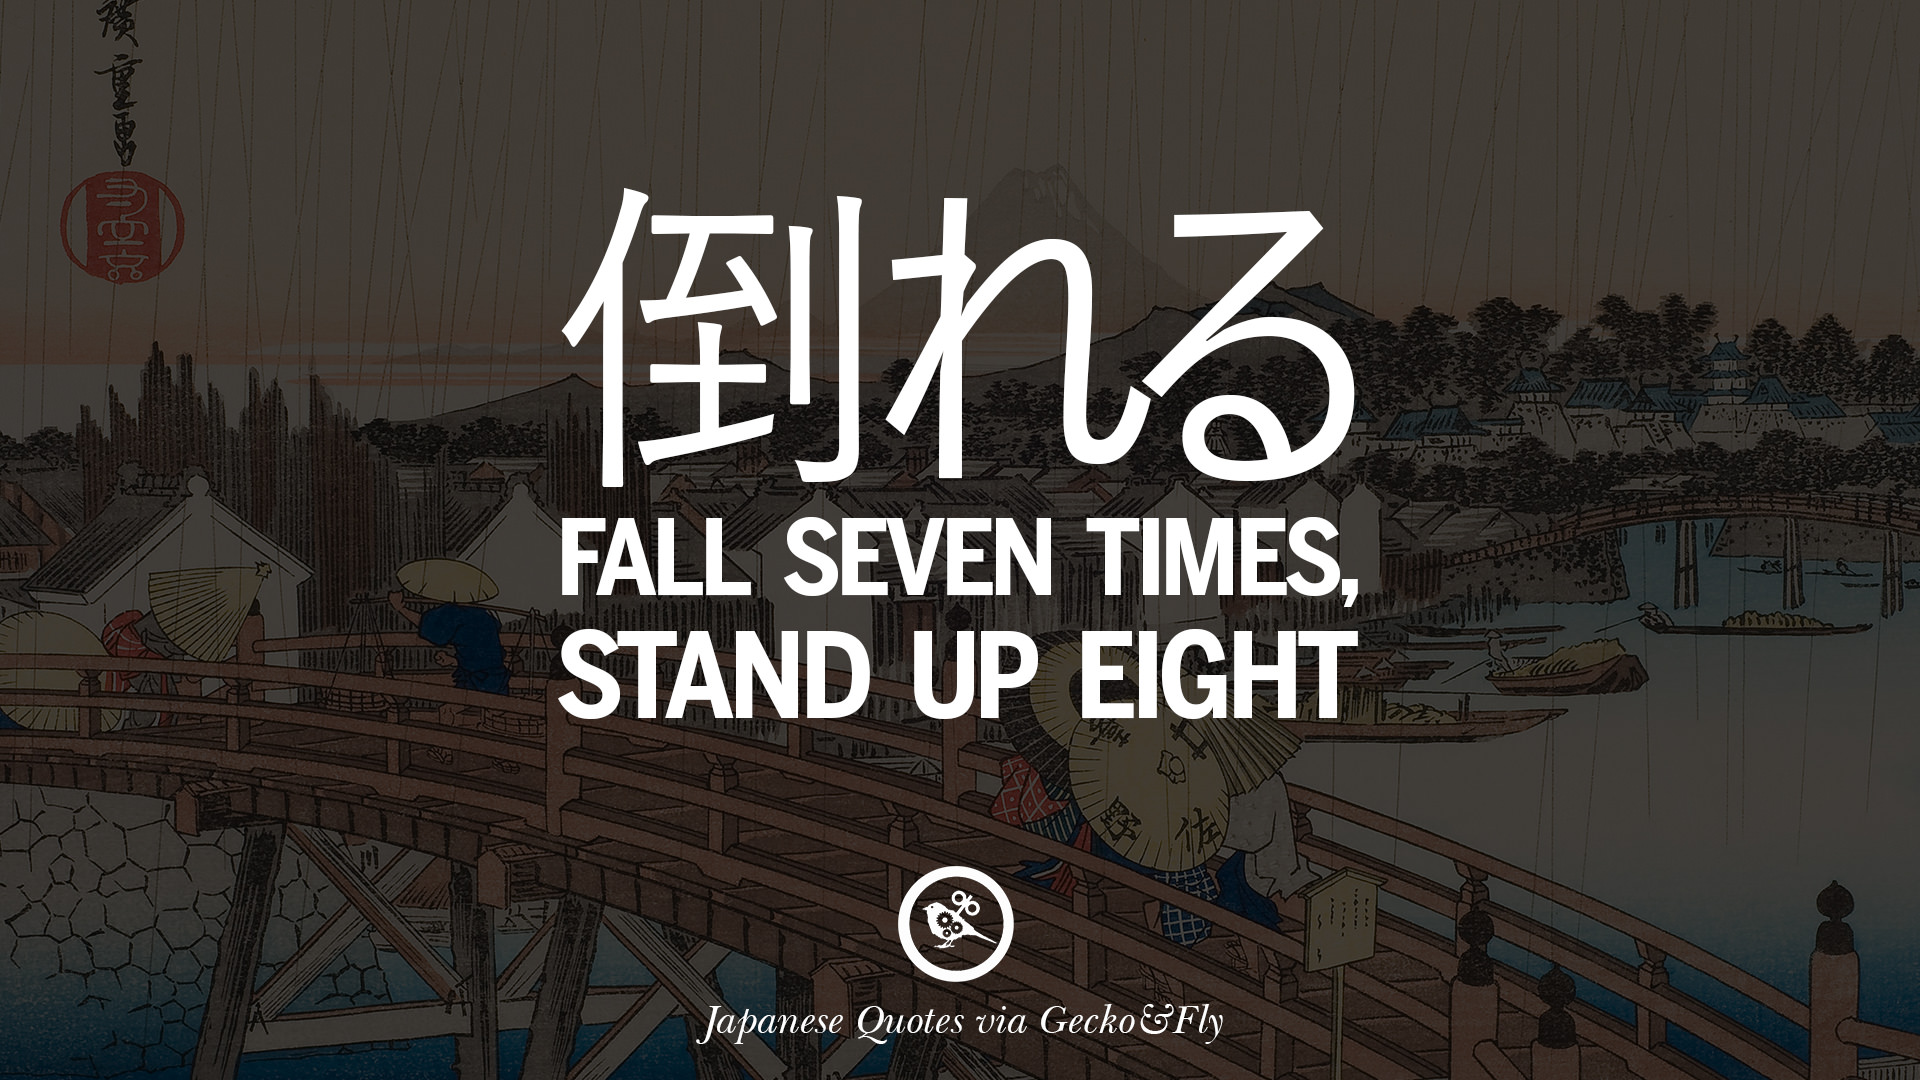 5 Japanese Words Of Wisdom - Inspirational Sayings And Quotes